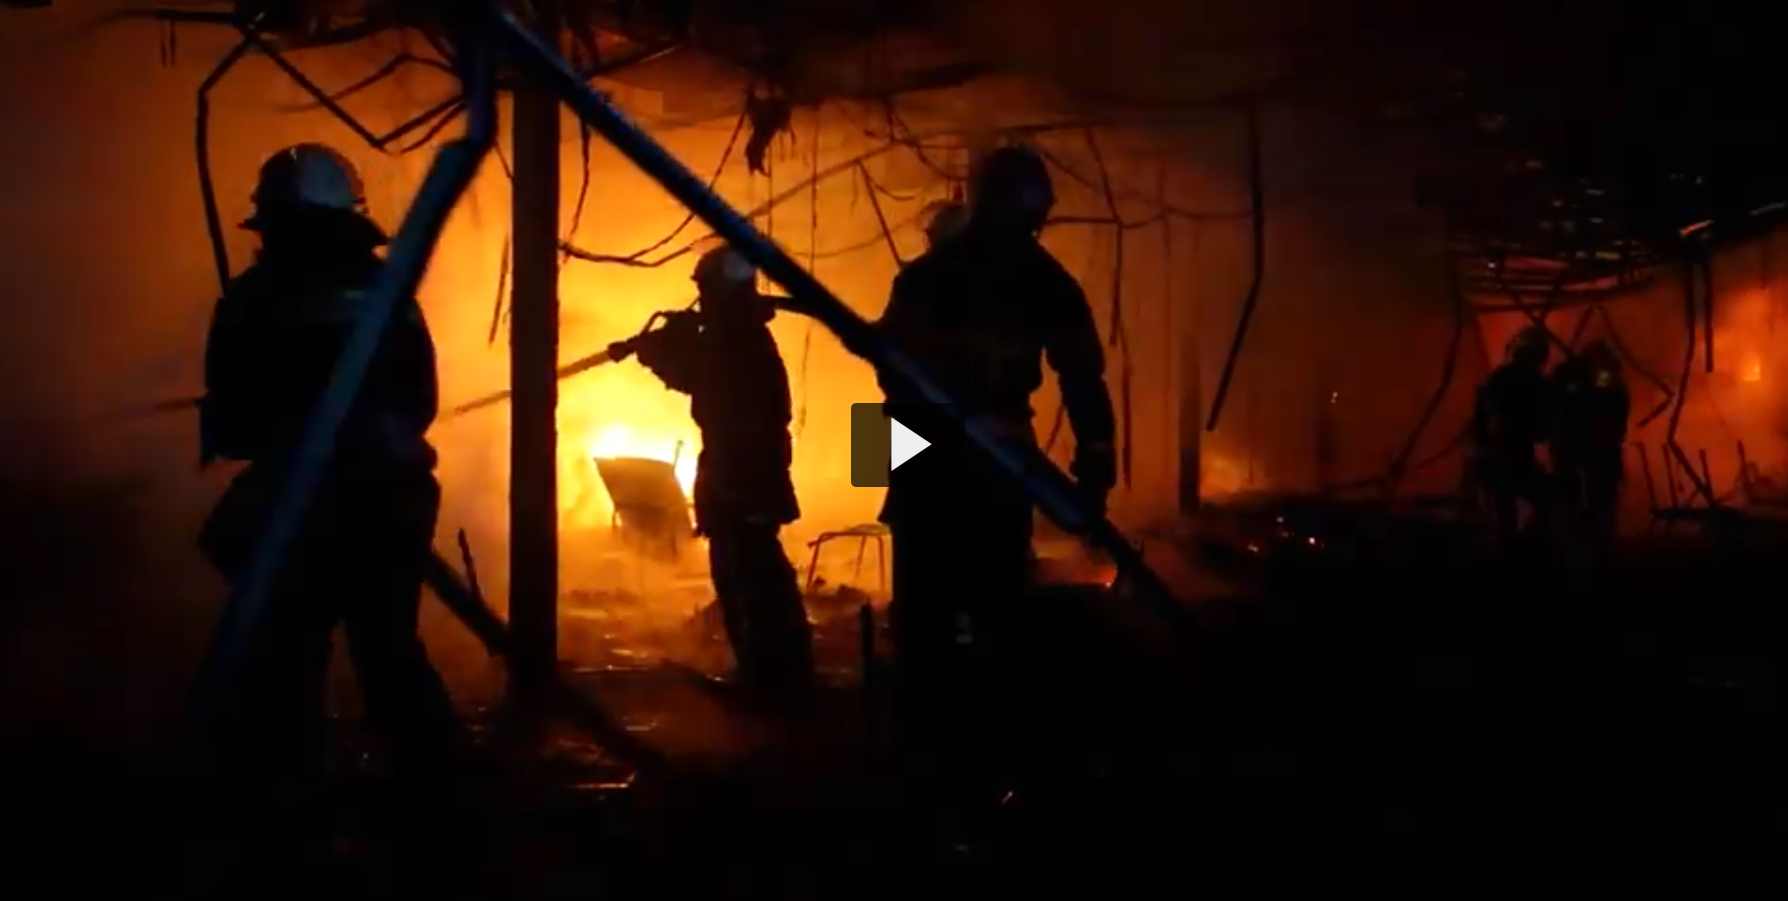 Screenshot of a video in which we see a silhouette of firefighters responding to a burning fire